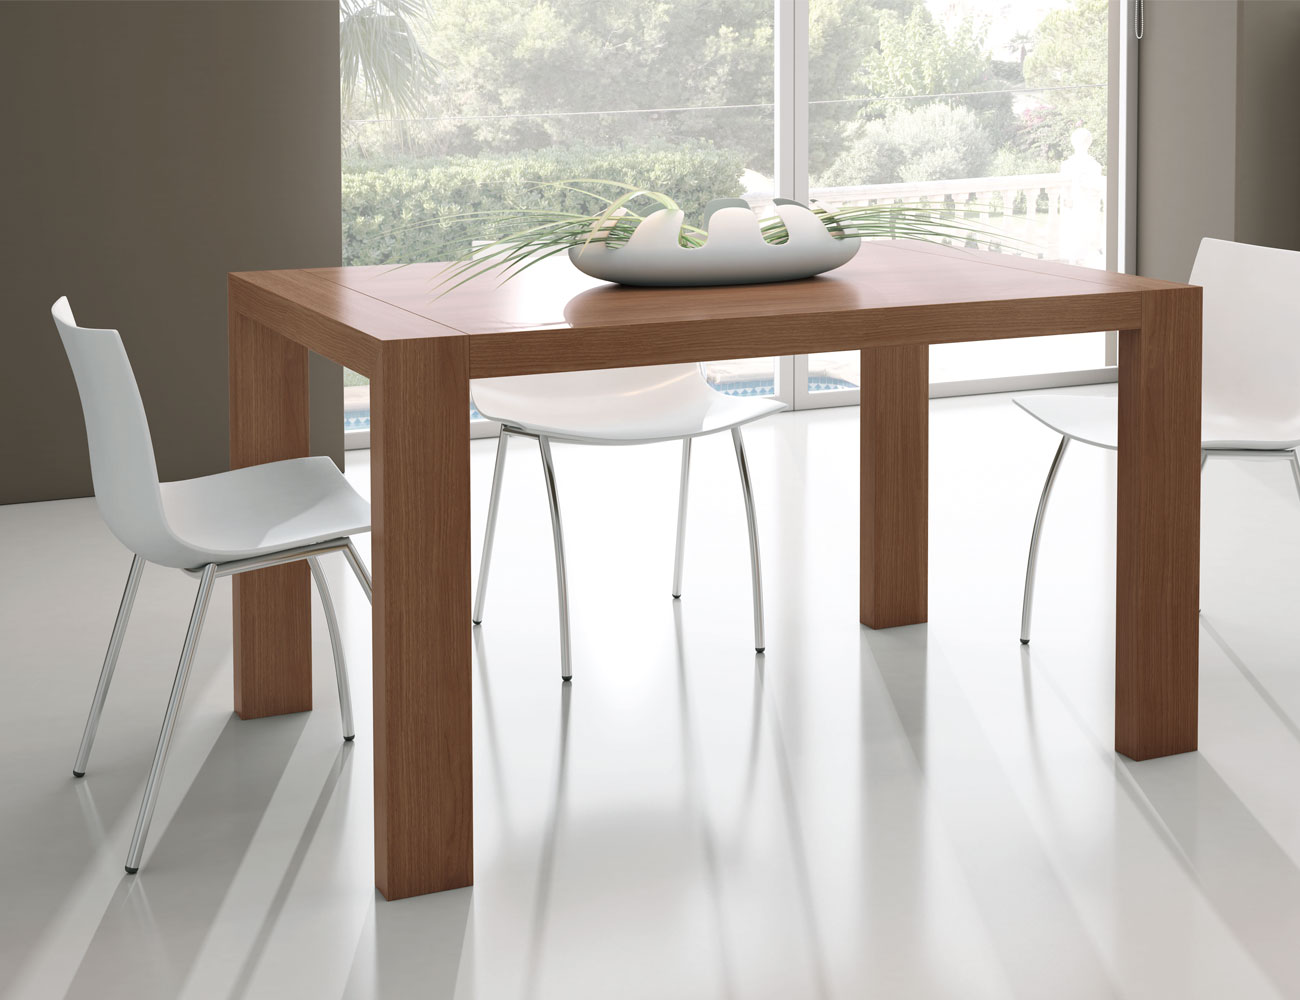 M223 mesa comedor rectangular extensible nogal6